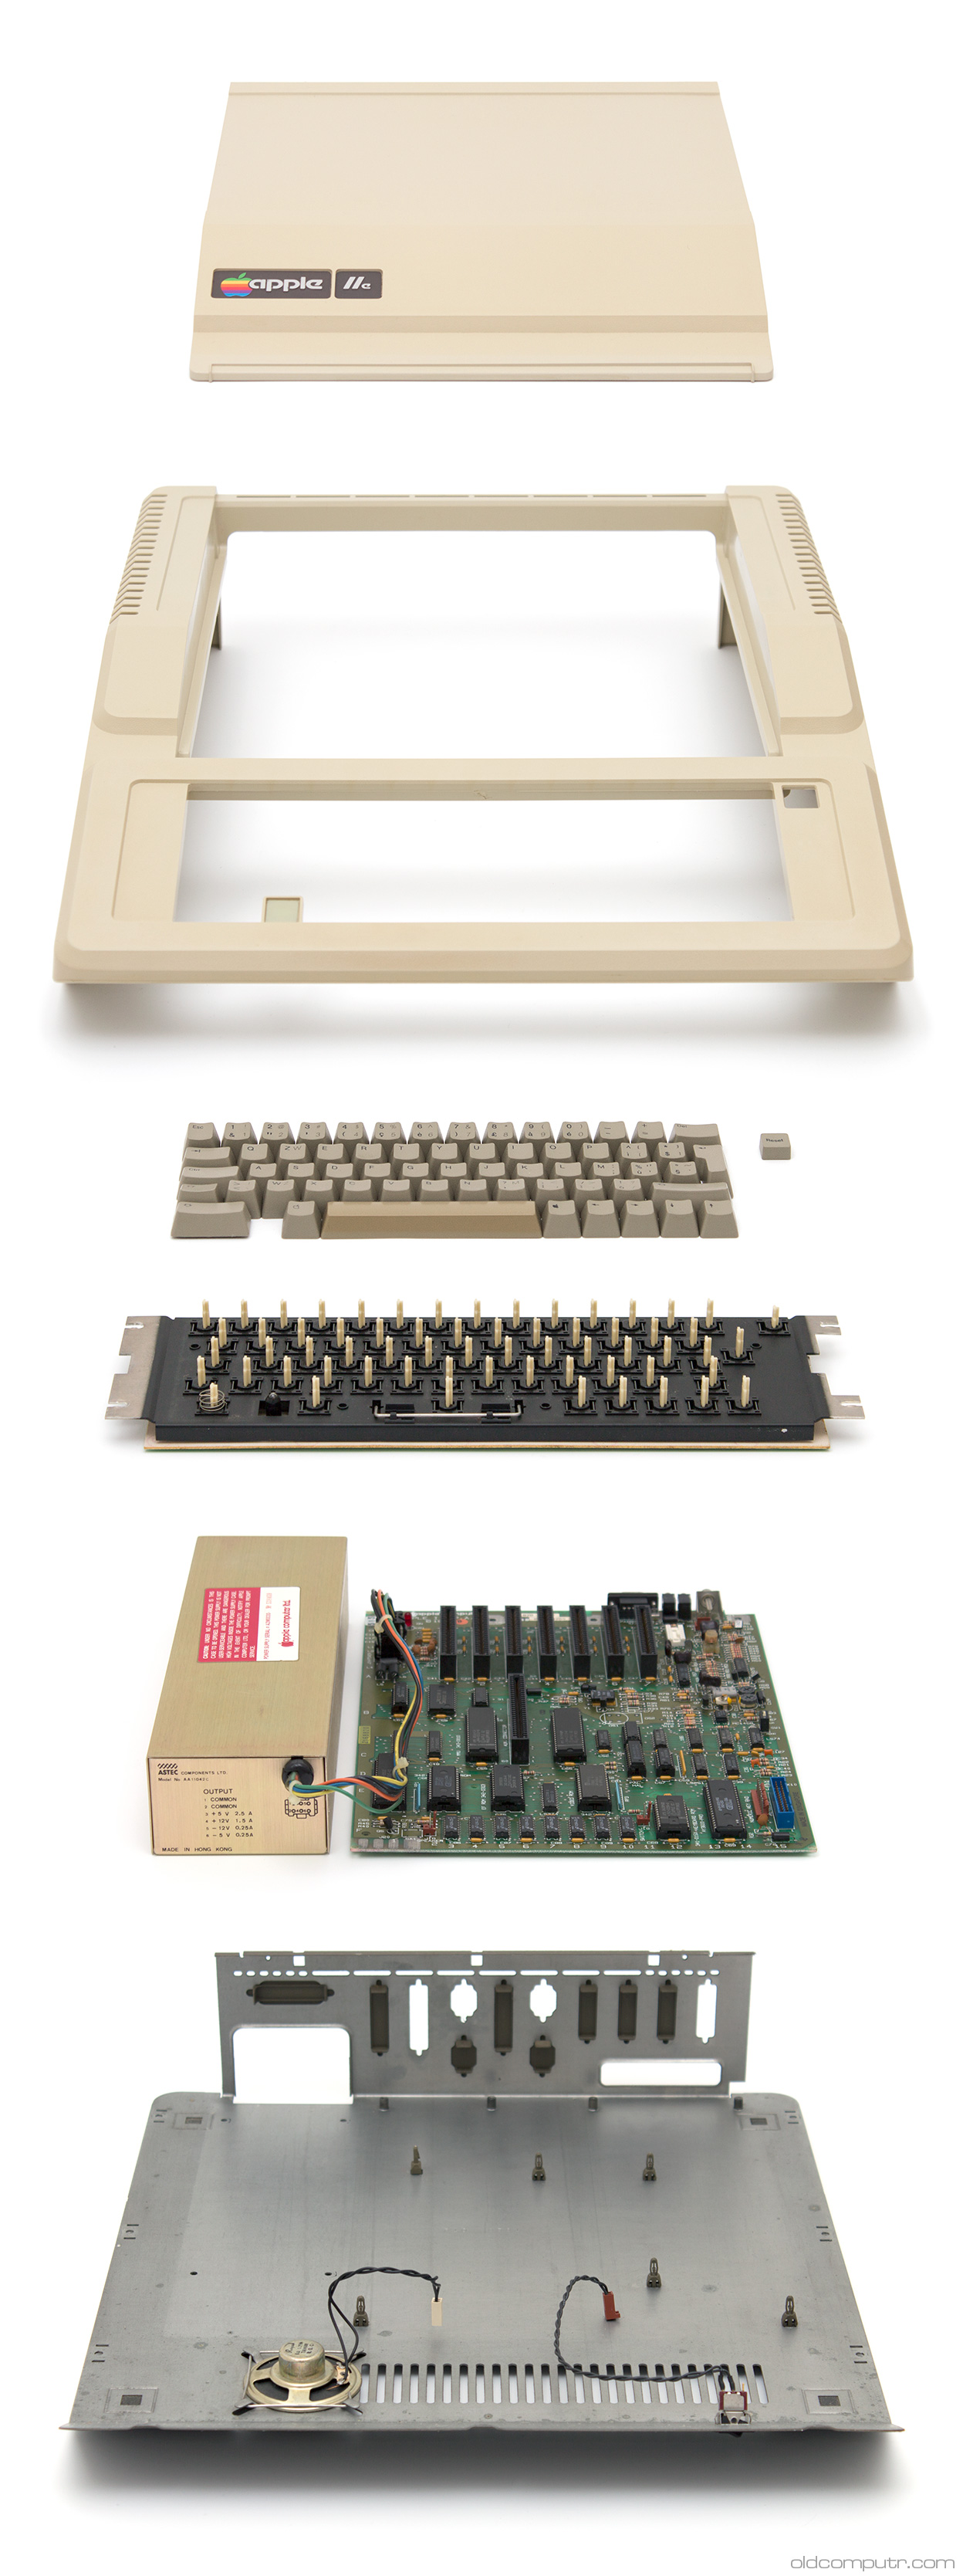 Apple IIe - teardown